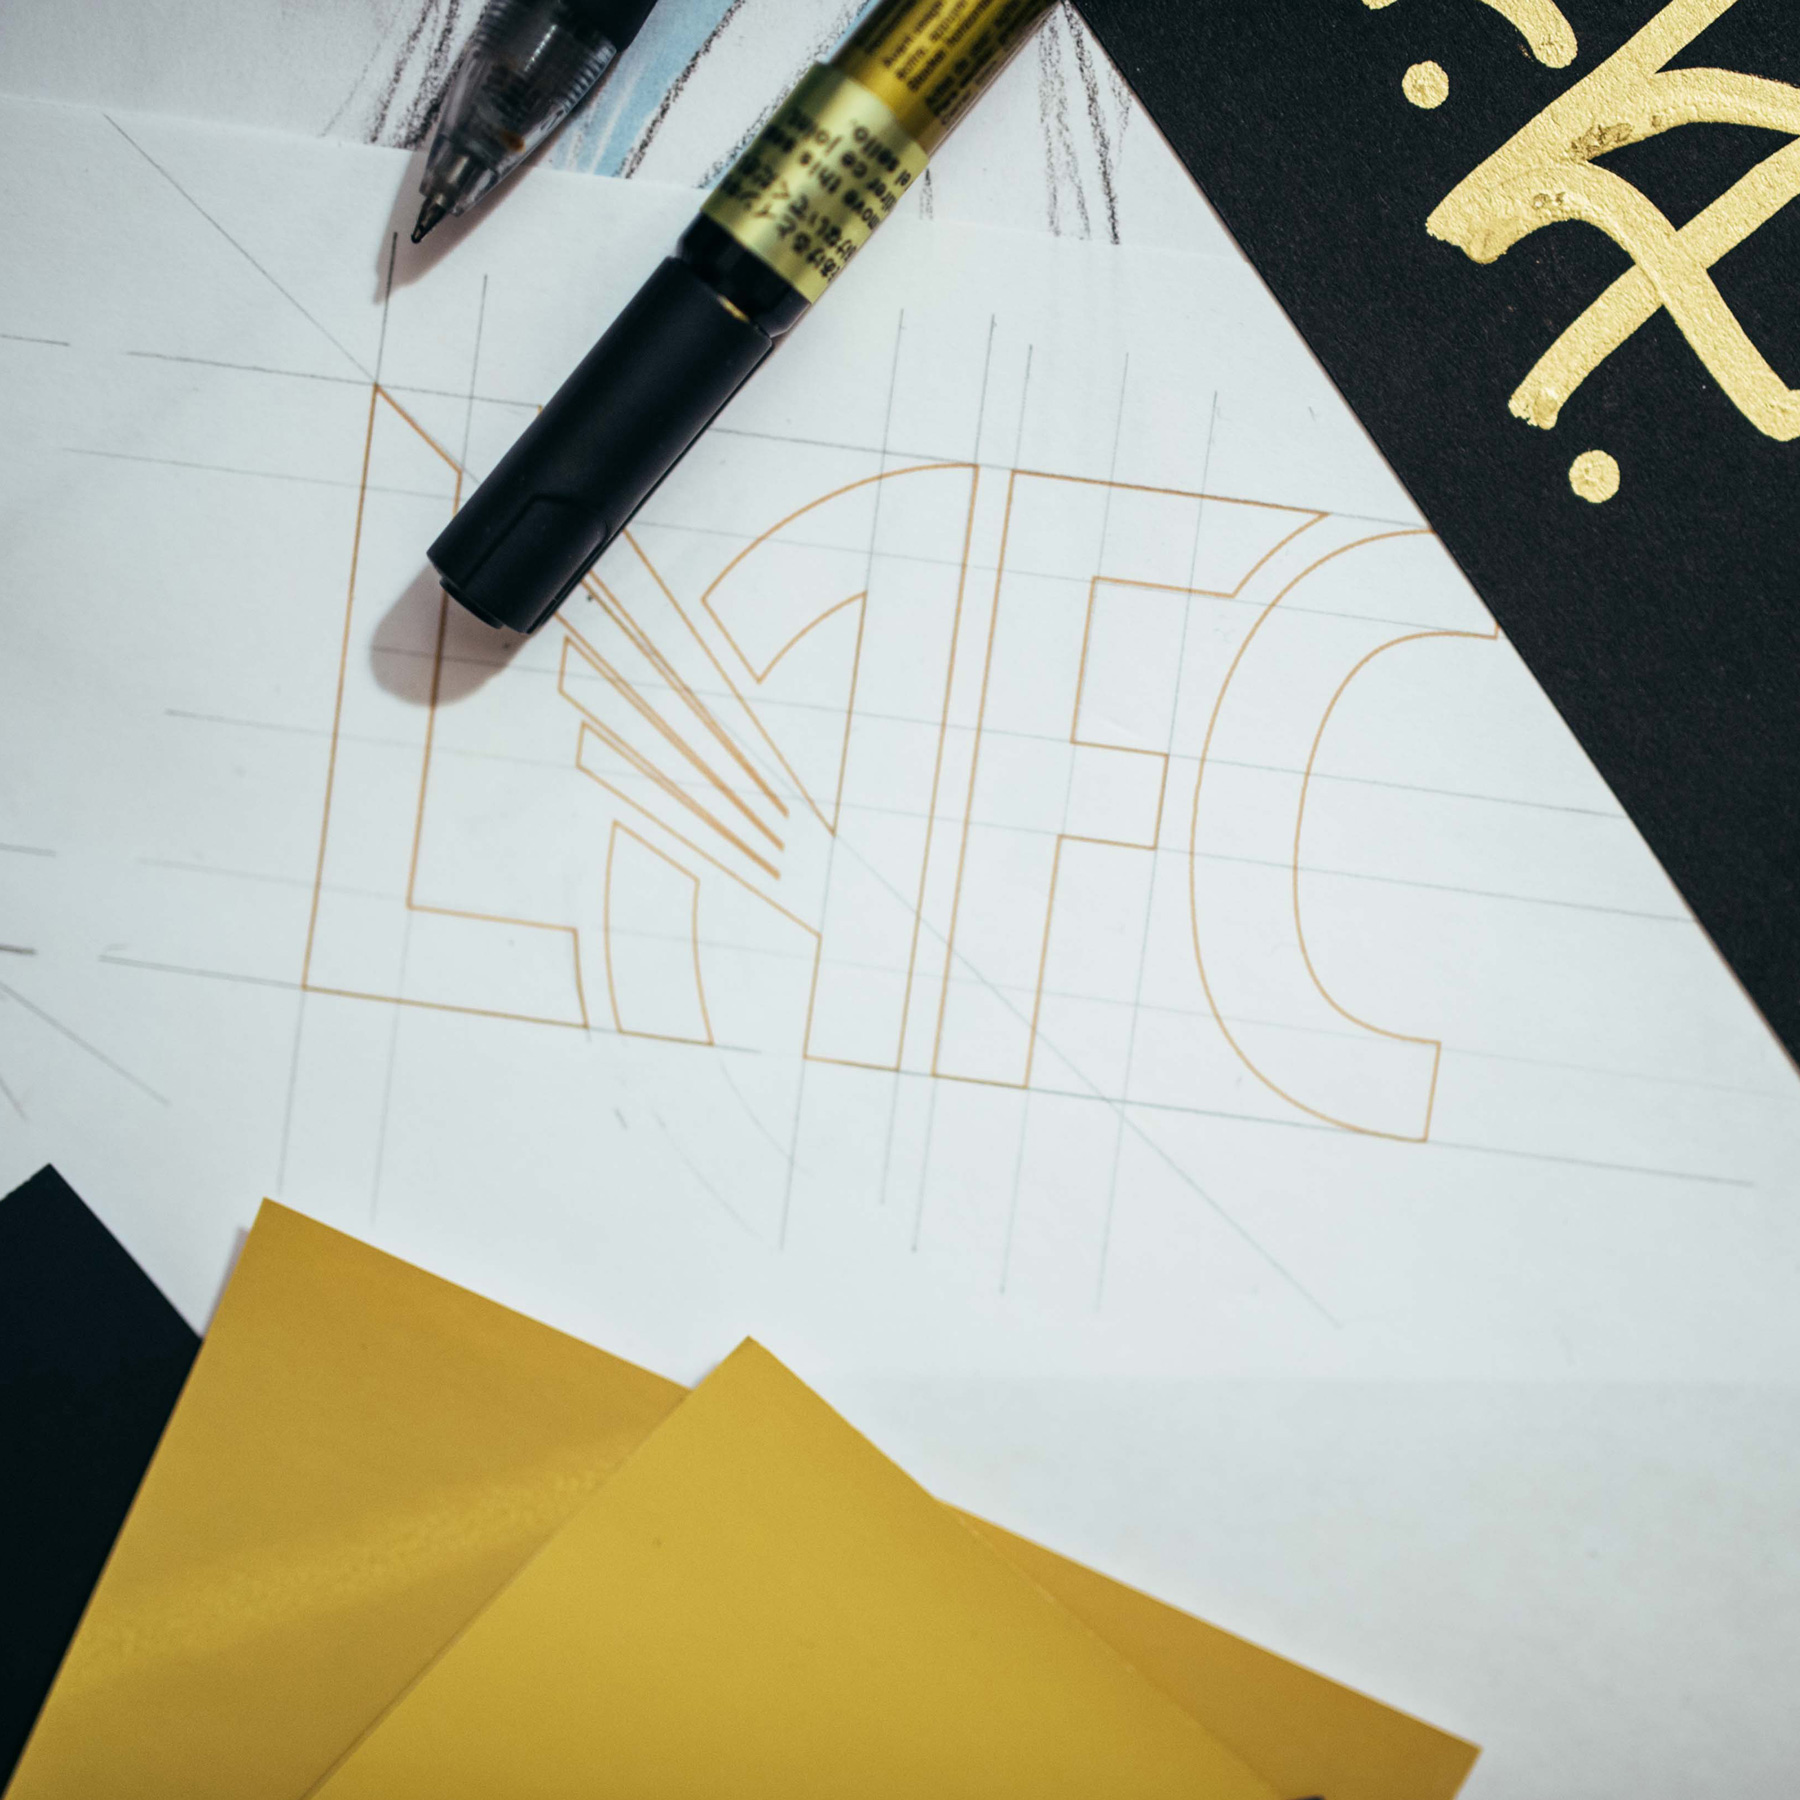 LAFC Badge, LAFC Logo, Matthew Wolff Design, Soccer, Football, Crest, Badge, Logo, Los Angeles FC, Club, Los Angeles Football Club, MLS, Artist, Graphic Designer, Branding, Nate Congleton